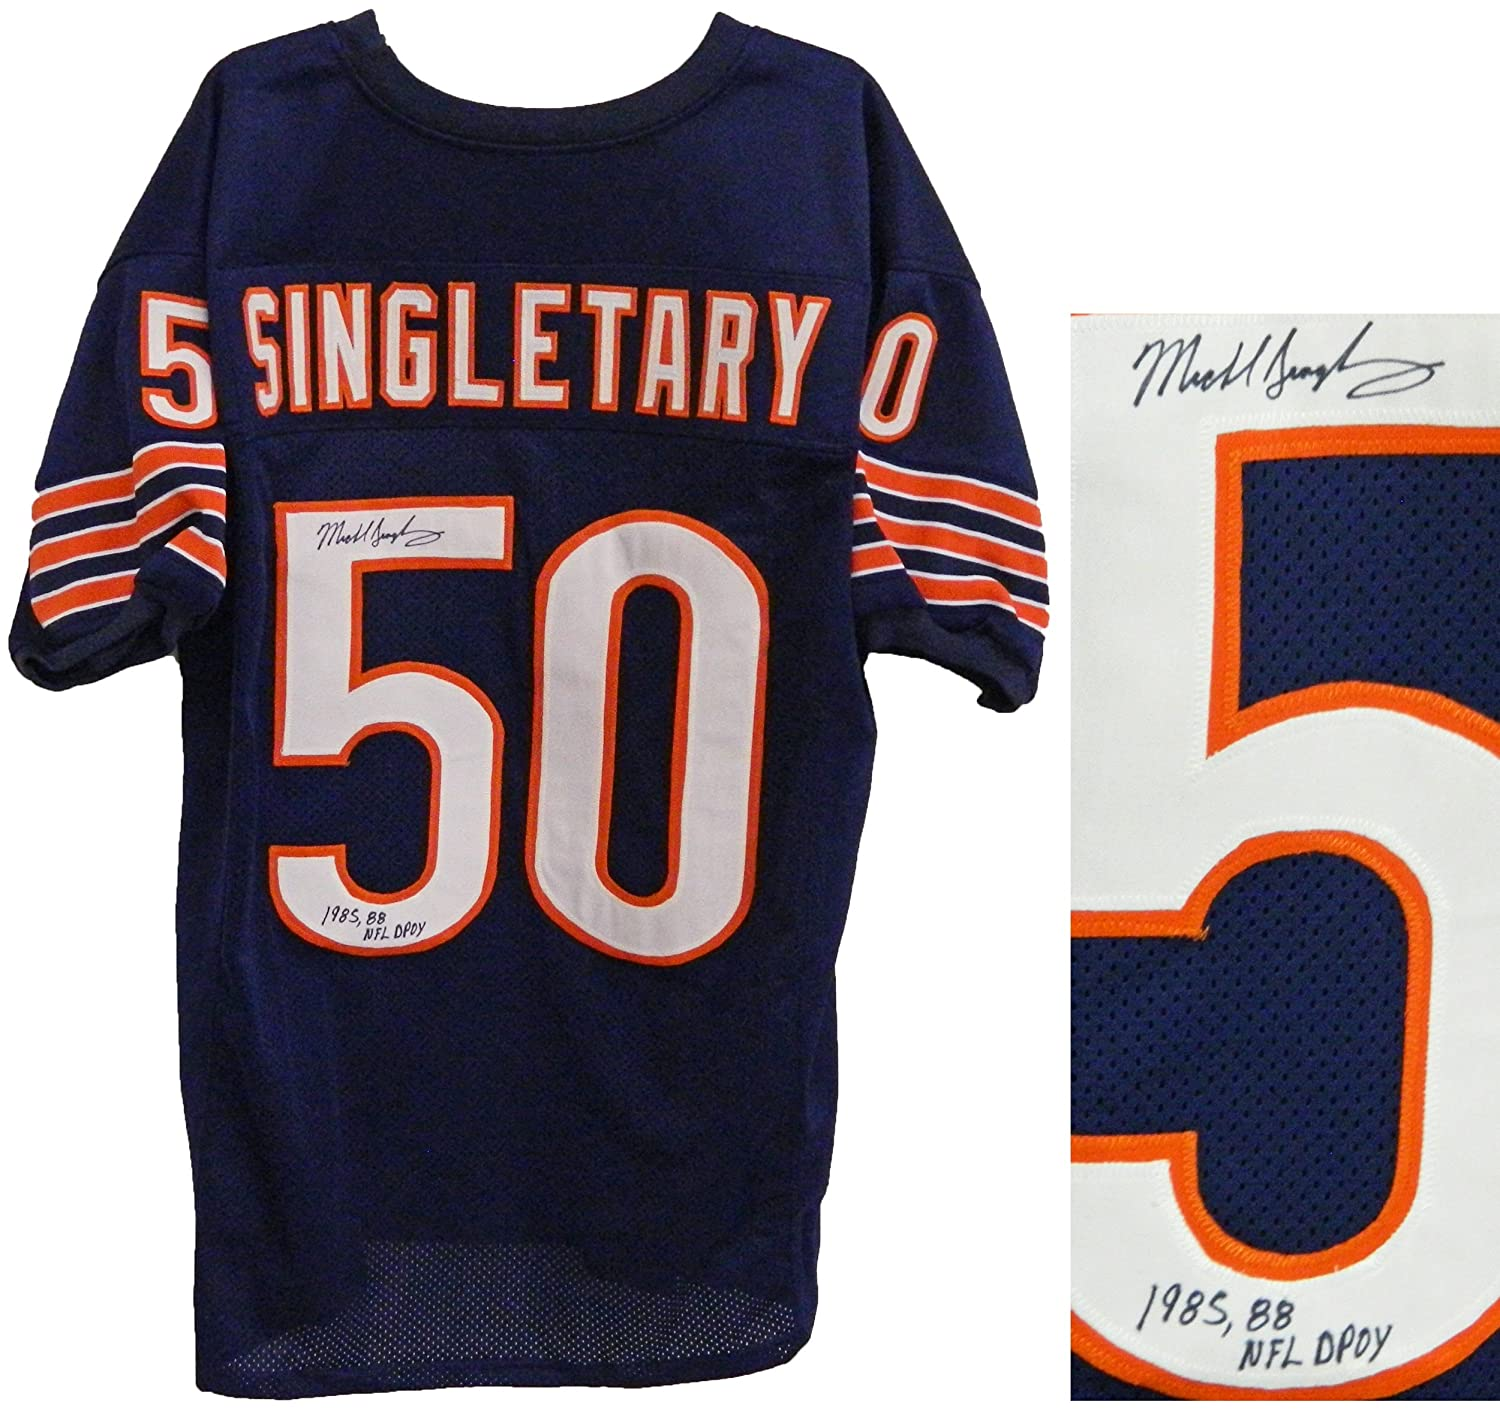 the best attitude 6b255 89271 Mike Singletary Signed Navy Custom Throwback Jersey w/1985 ...